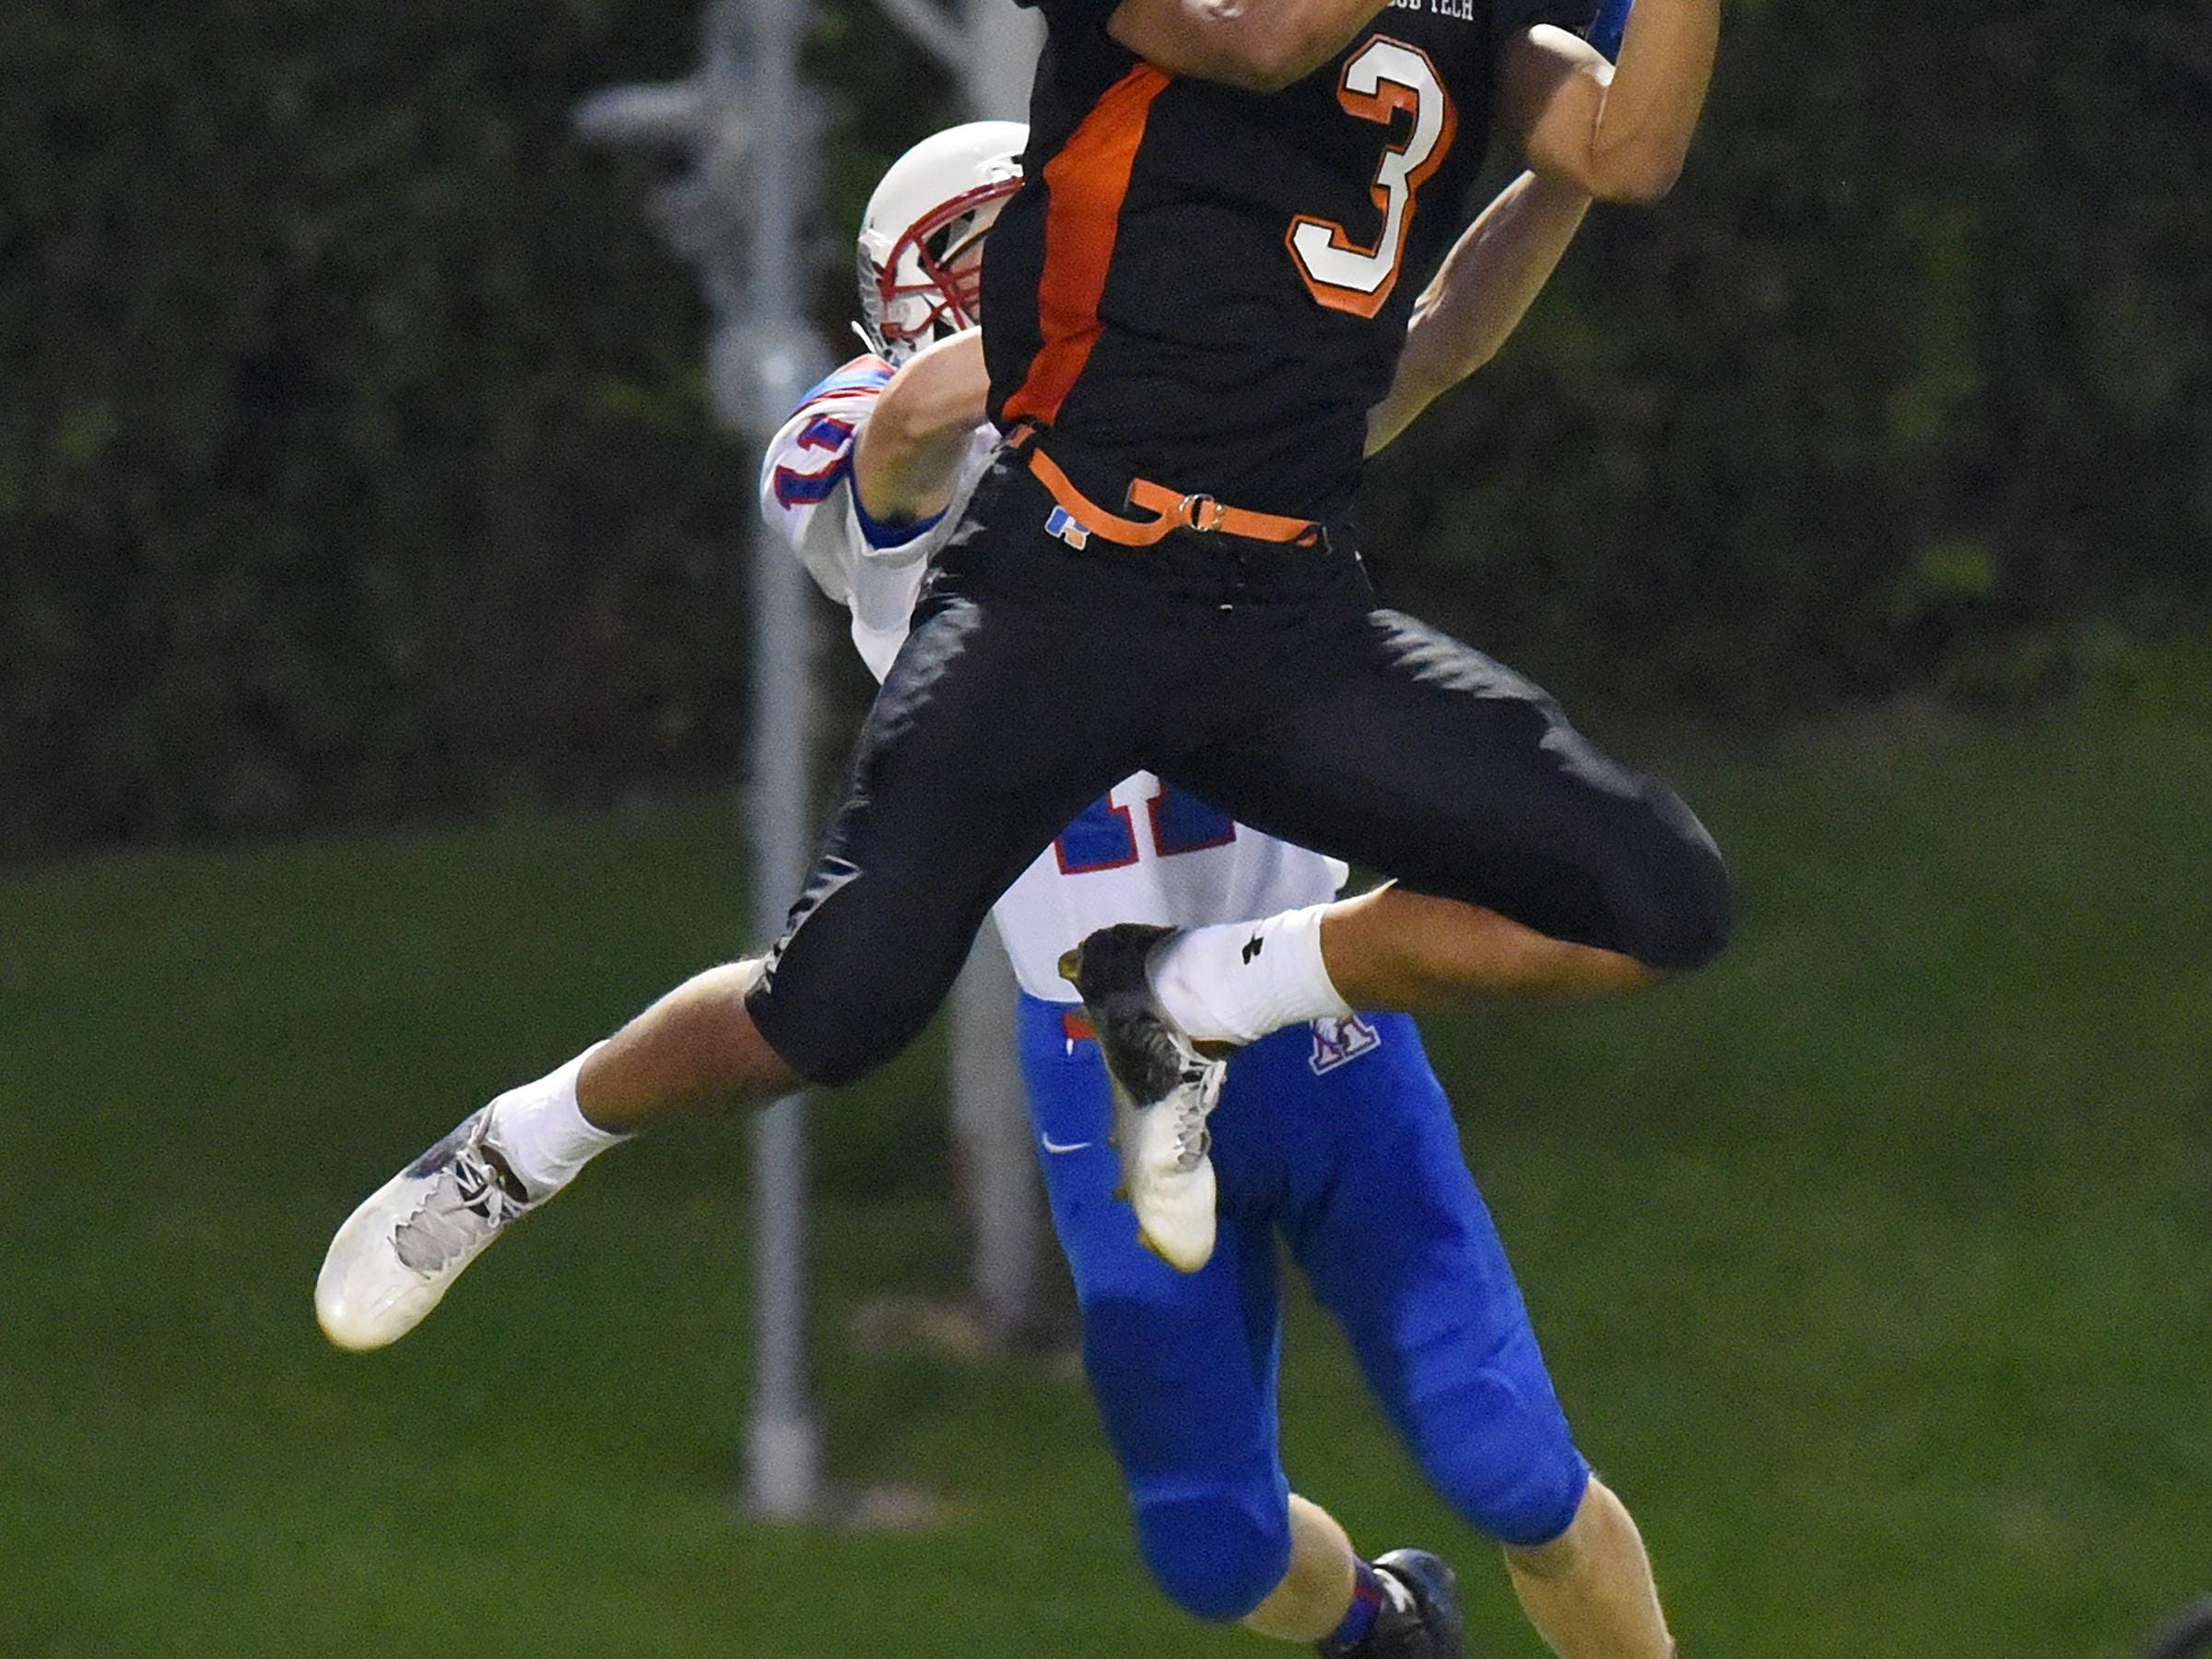 St. Cloud Tech's Brevyn Spann-Ford leaps for a reception during the first half of Friday's game at Husky Stadium in St. Cloud.